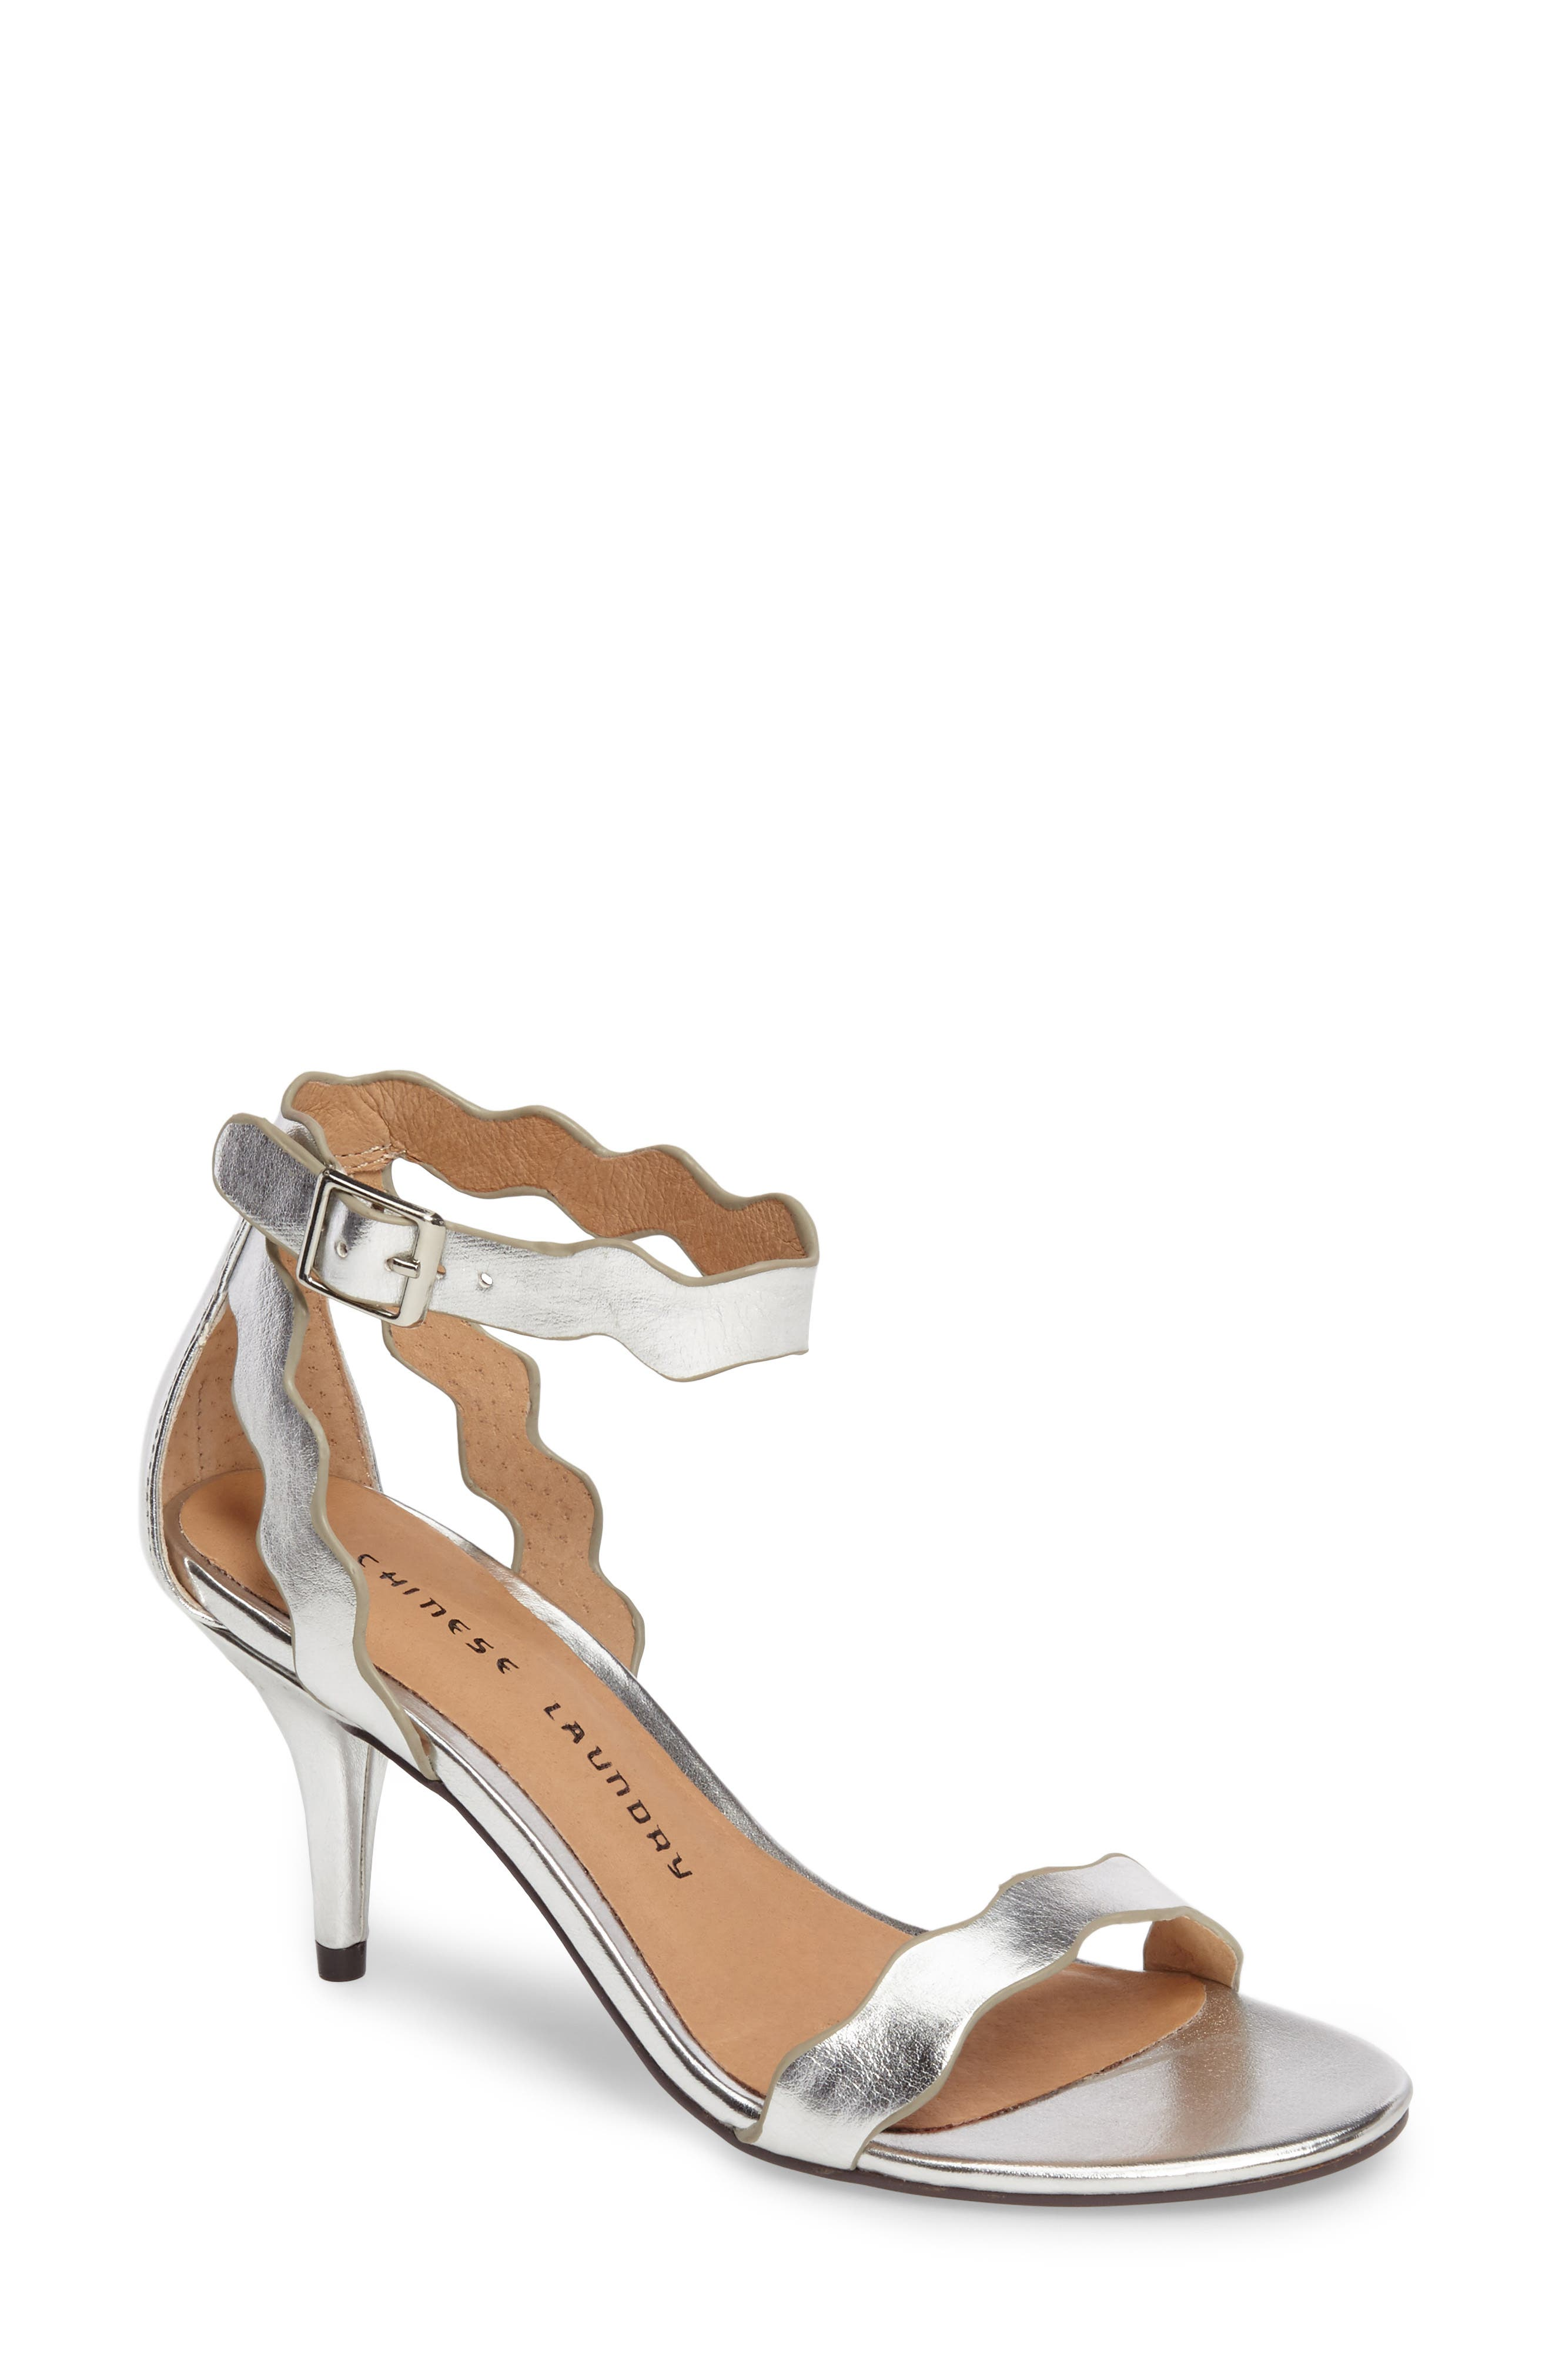 Alternate Image 1 Selected - Chinese Laundry 'Rubie' Scalloped Ankle Strap Sandal (Women)